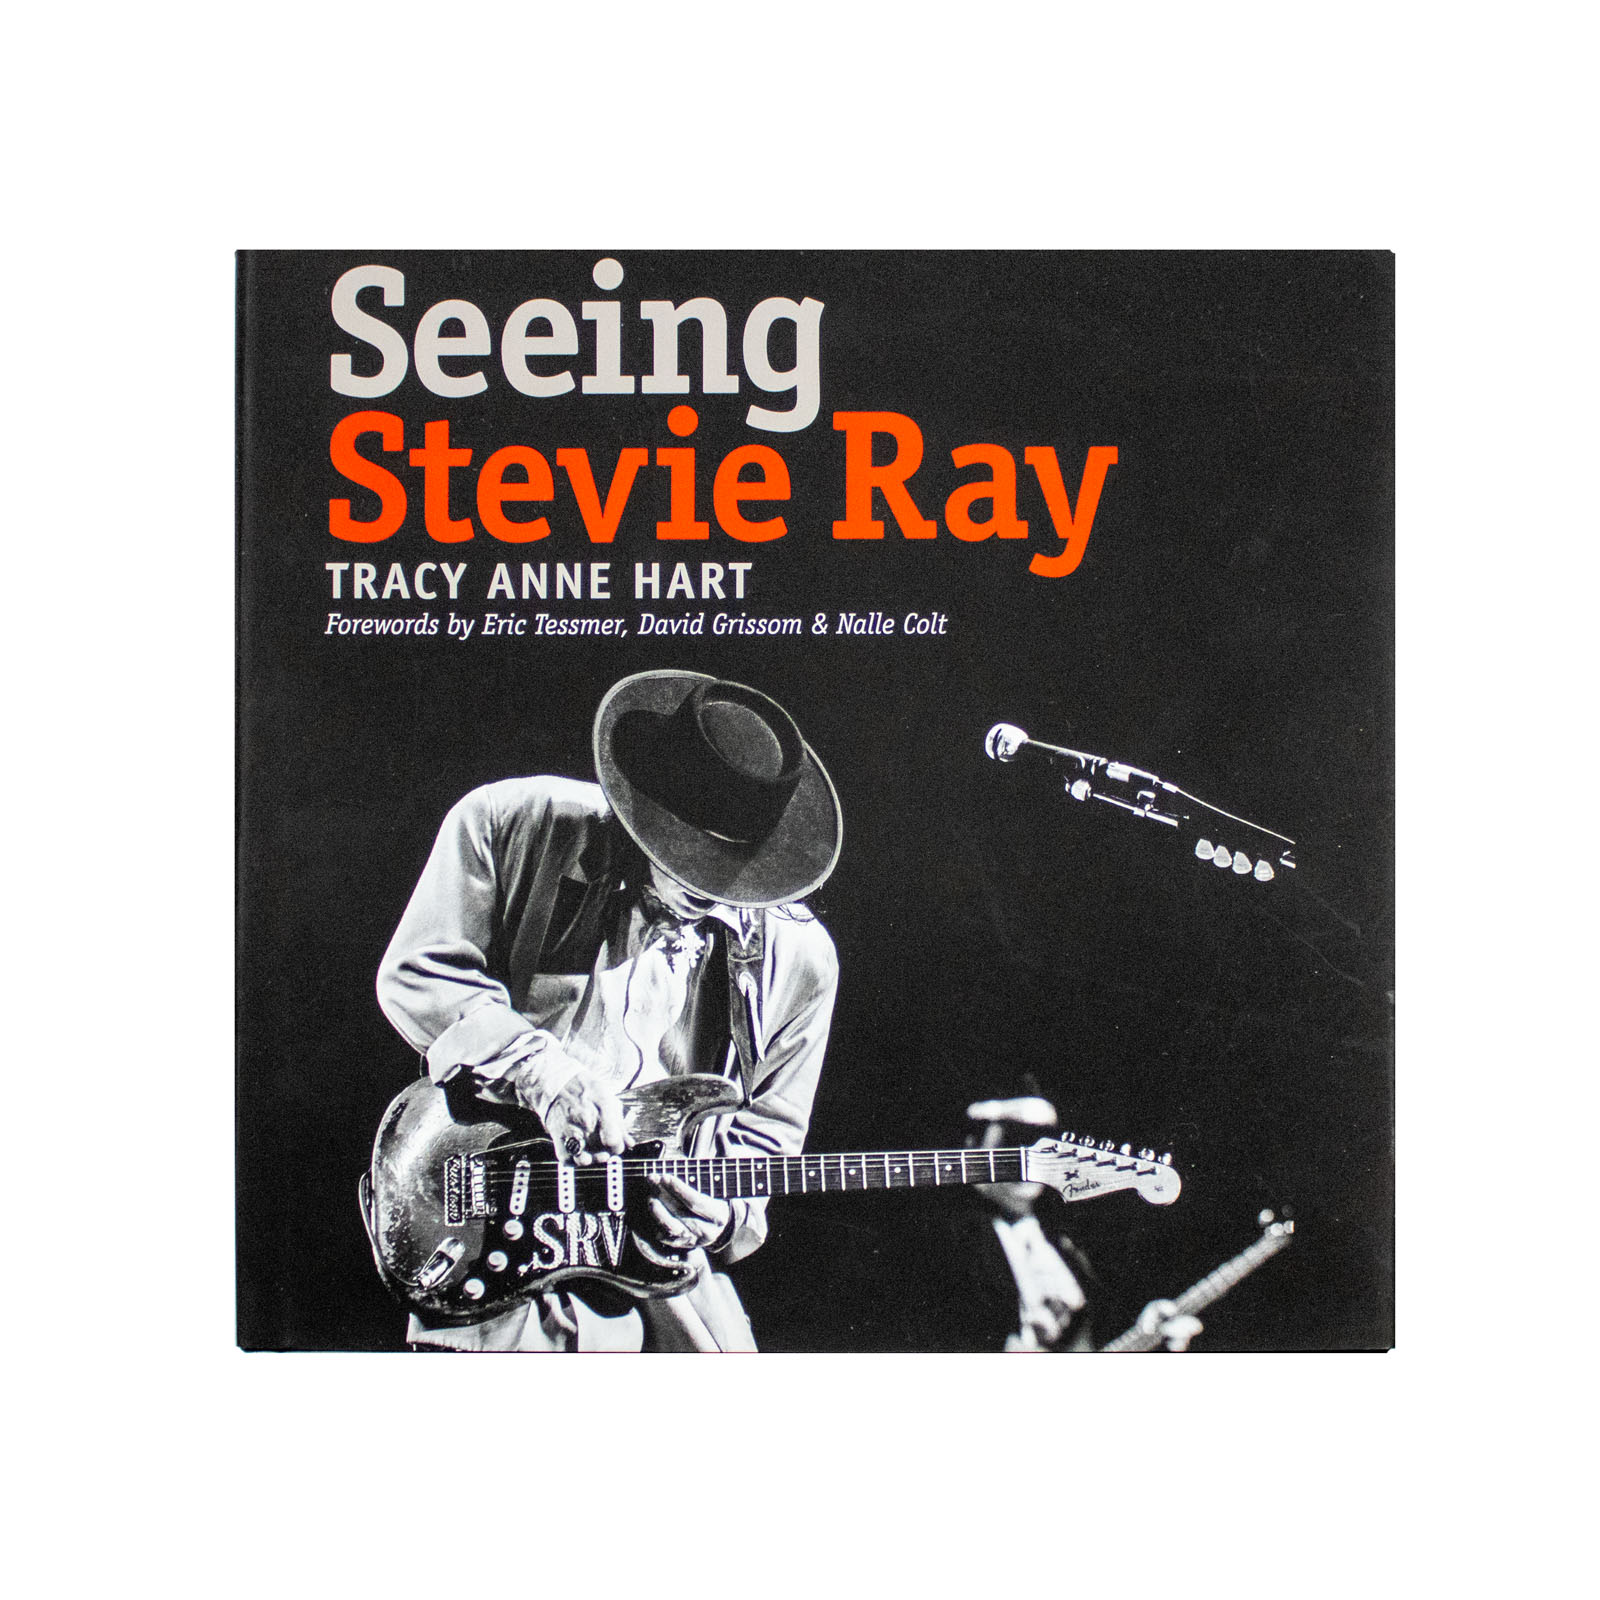 Seeing Stevie Ray